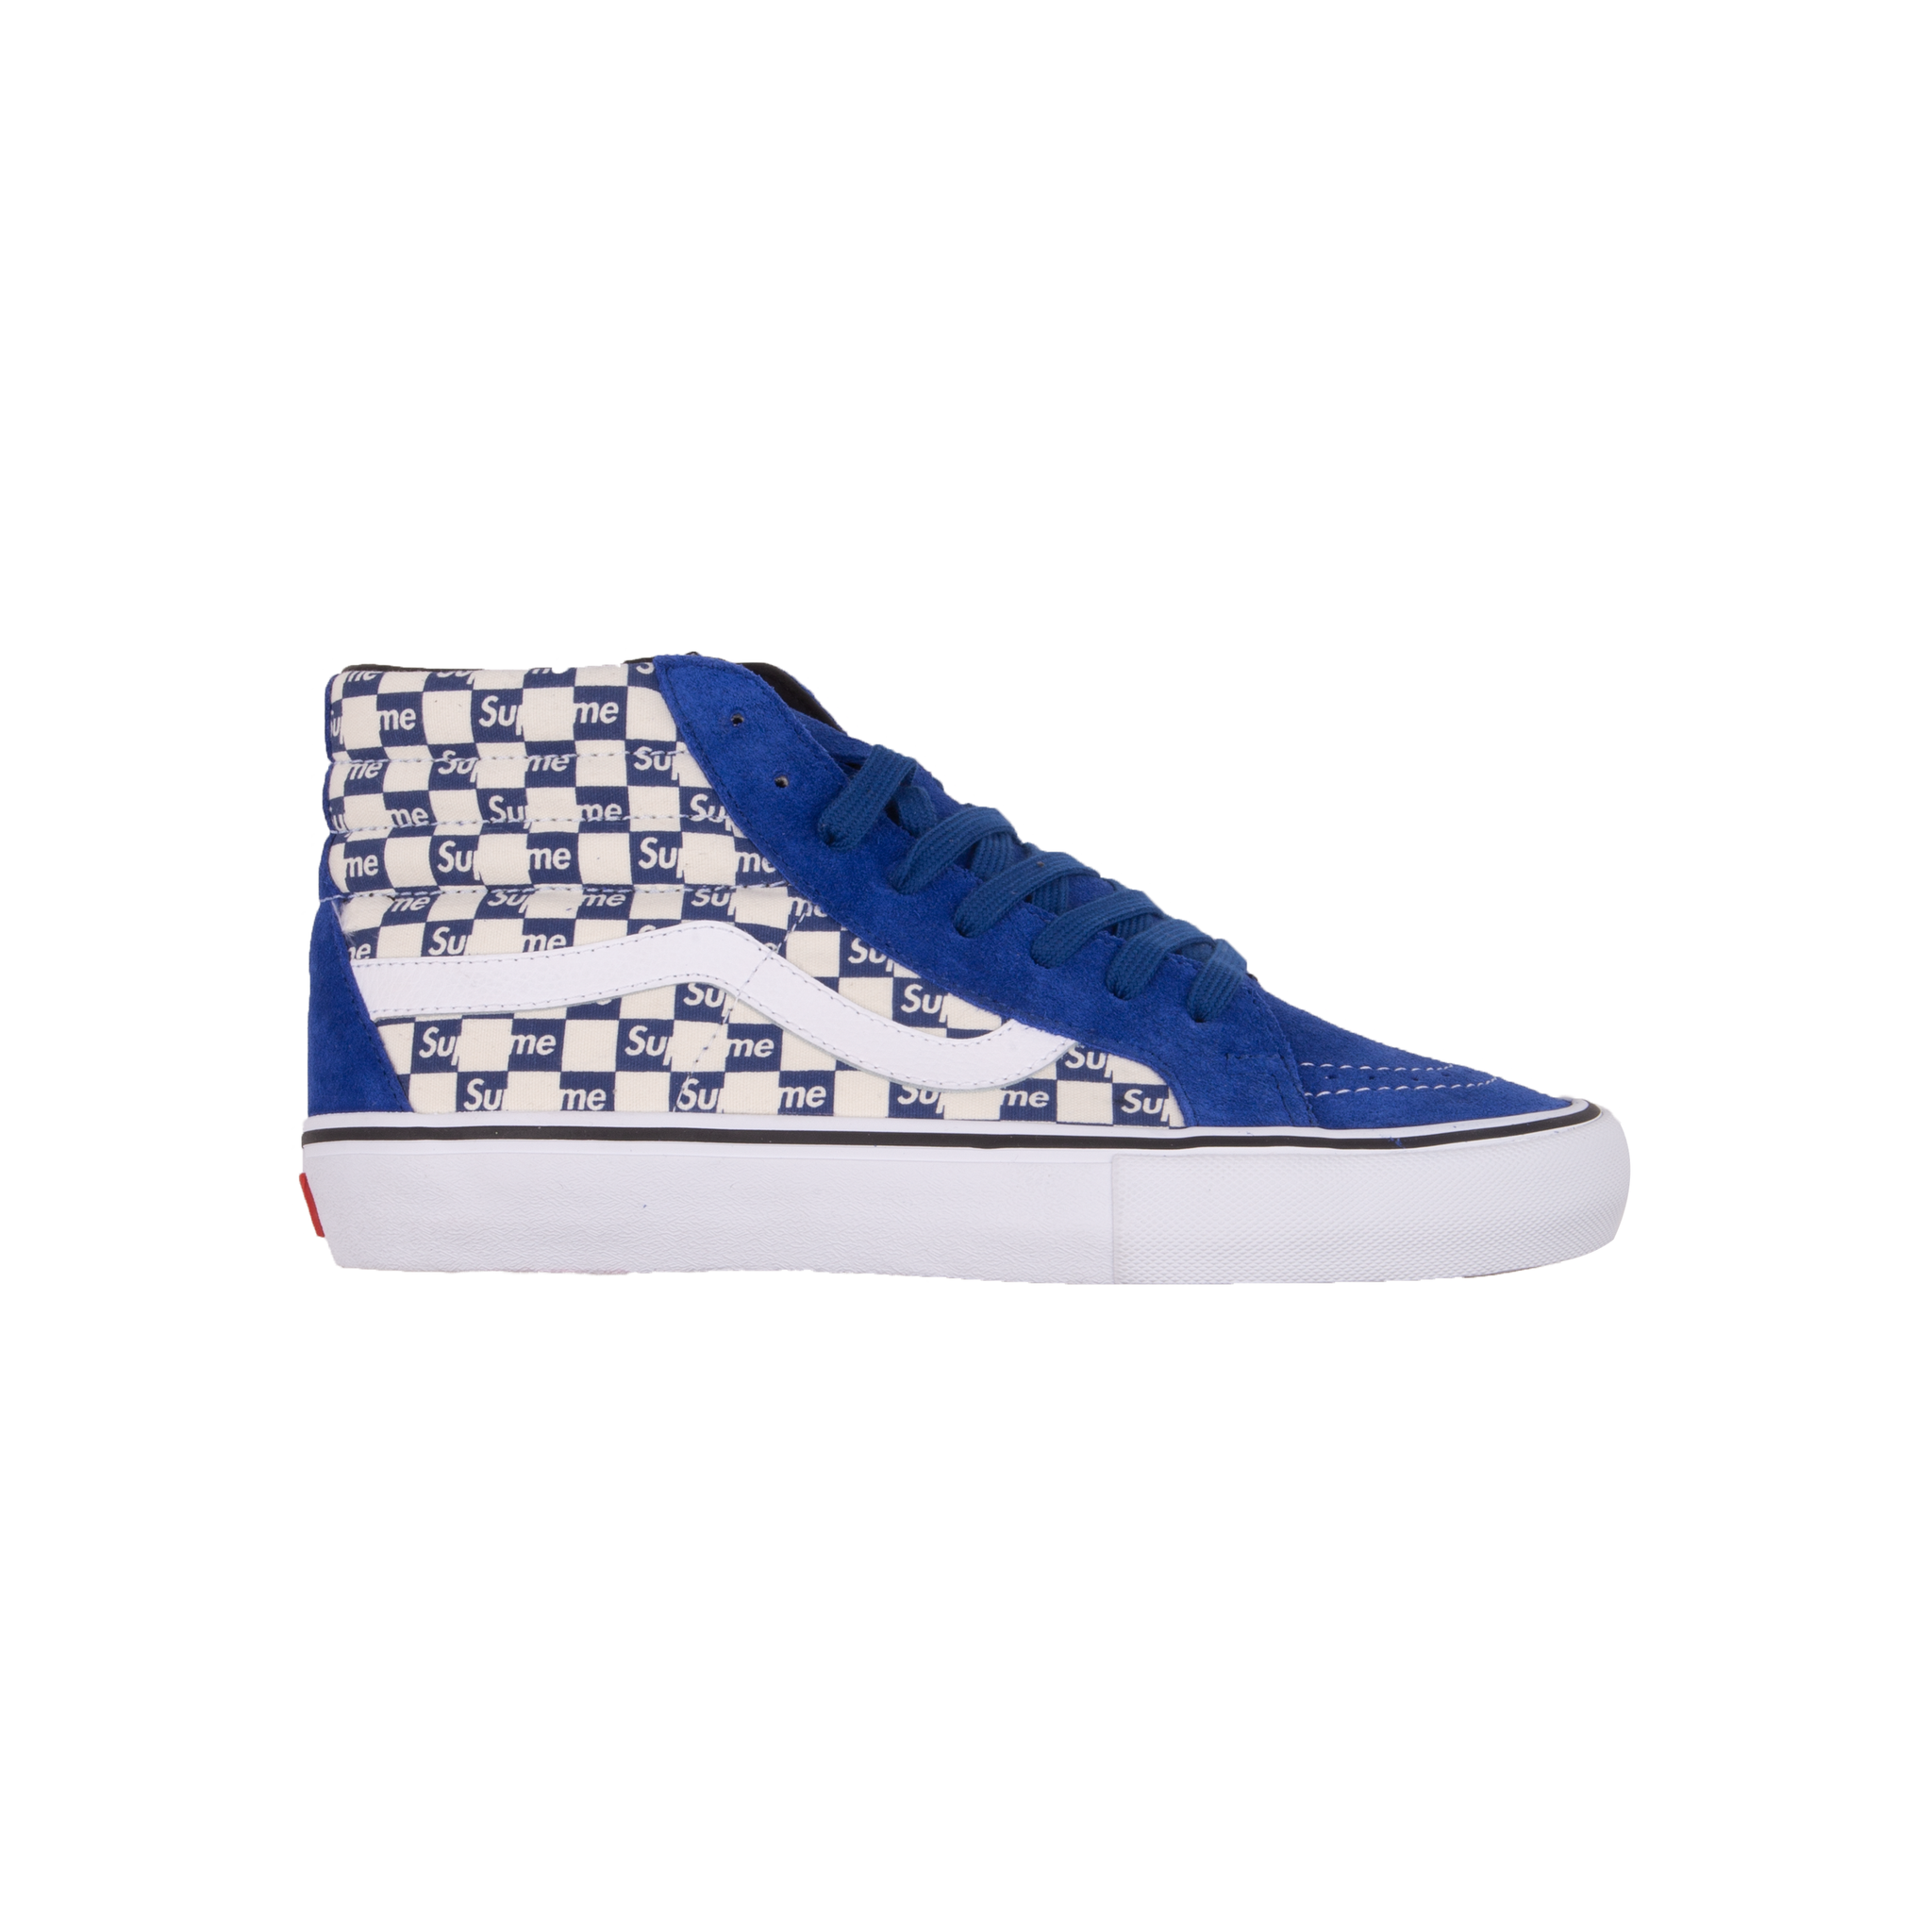 Vans Blue Supreme Checkerboard Sk8 Hi